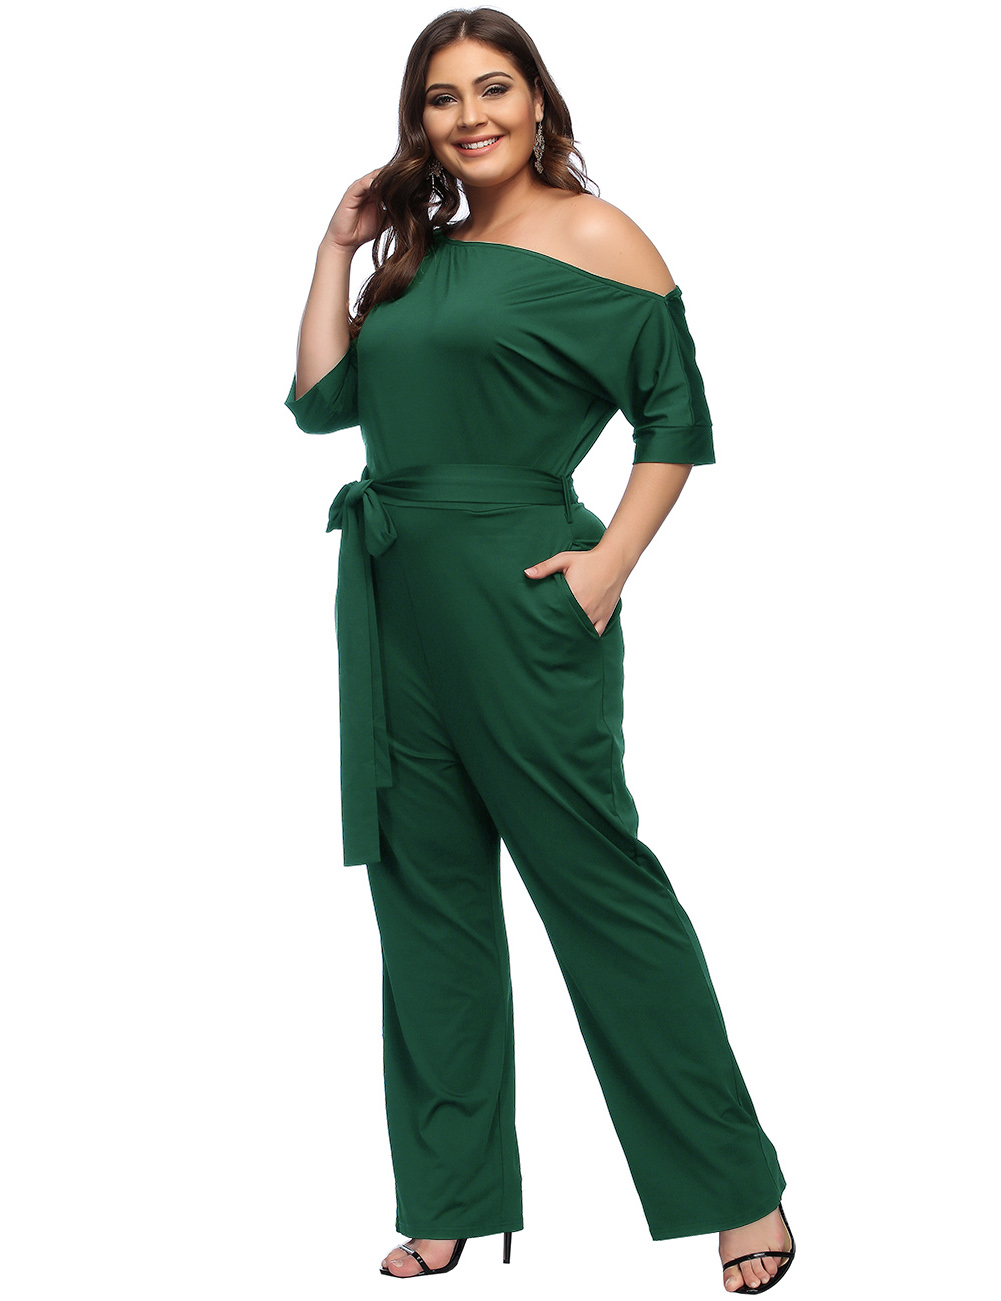 //cdn.affectcloud.com/hexinfashion/upload/imgs/Dress/Jumpsuit_Romper/H180146-GN5/H180146-GN5-201911055dc13830251f1.jpg